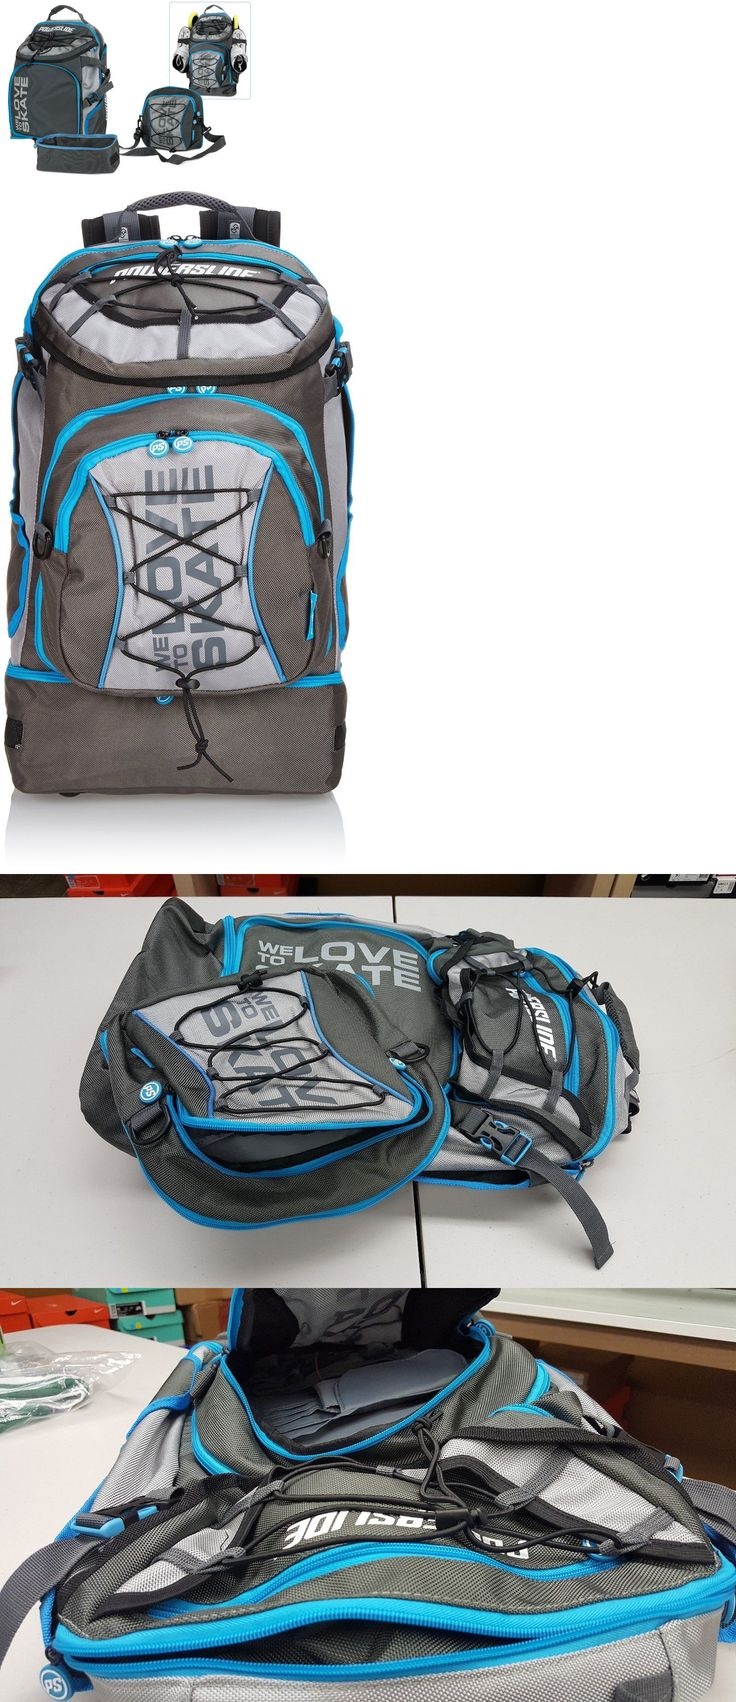 Other Inline and Roller Skating 1301: Powerslide Pro Backpack From Inline Warehouse Brand New 907004 -> BUY IT NOW ONLY: $84.95 on eBay!